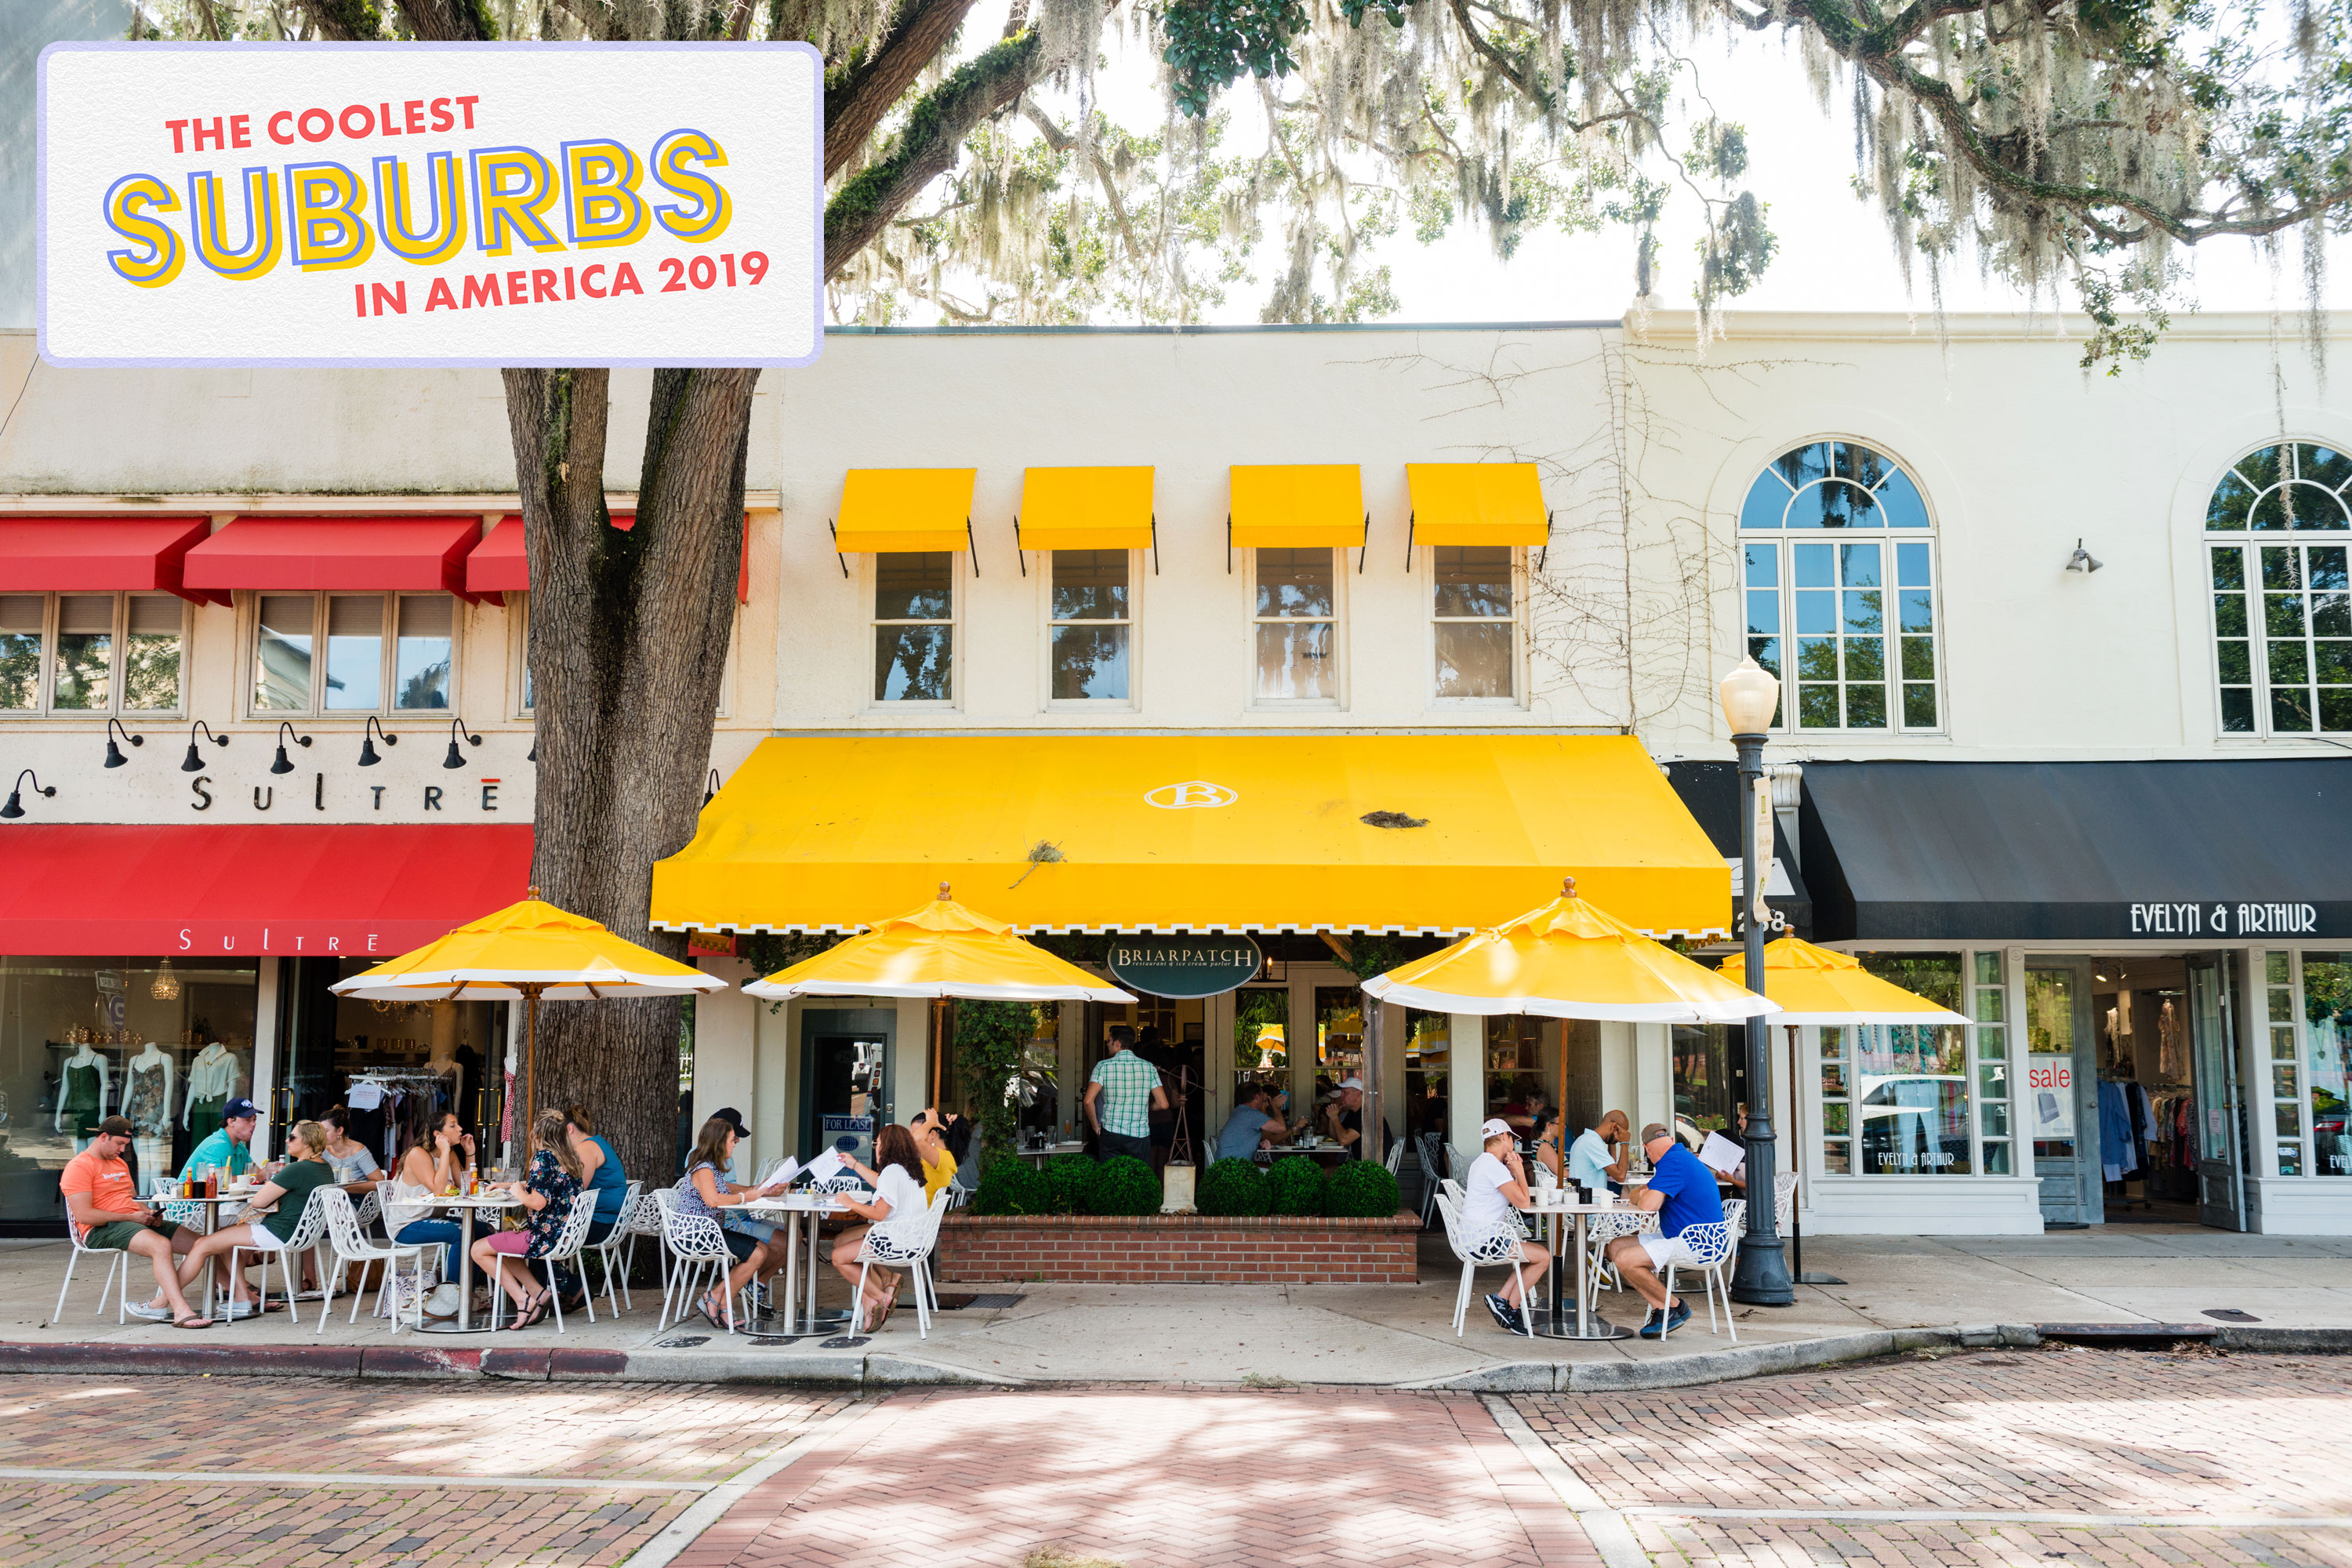 Why Winter Park, a Town 30 Minutes from Disney World, Is One of the Coolest Suburbs in America